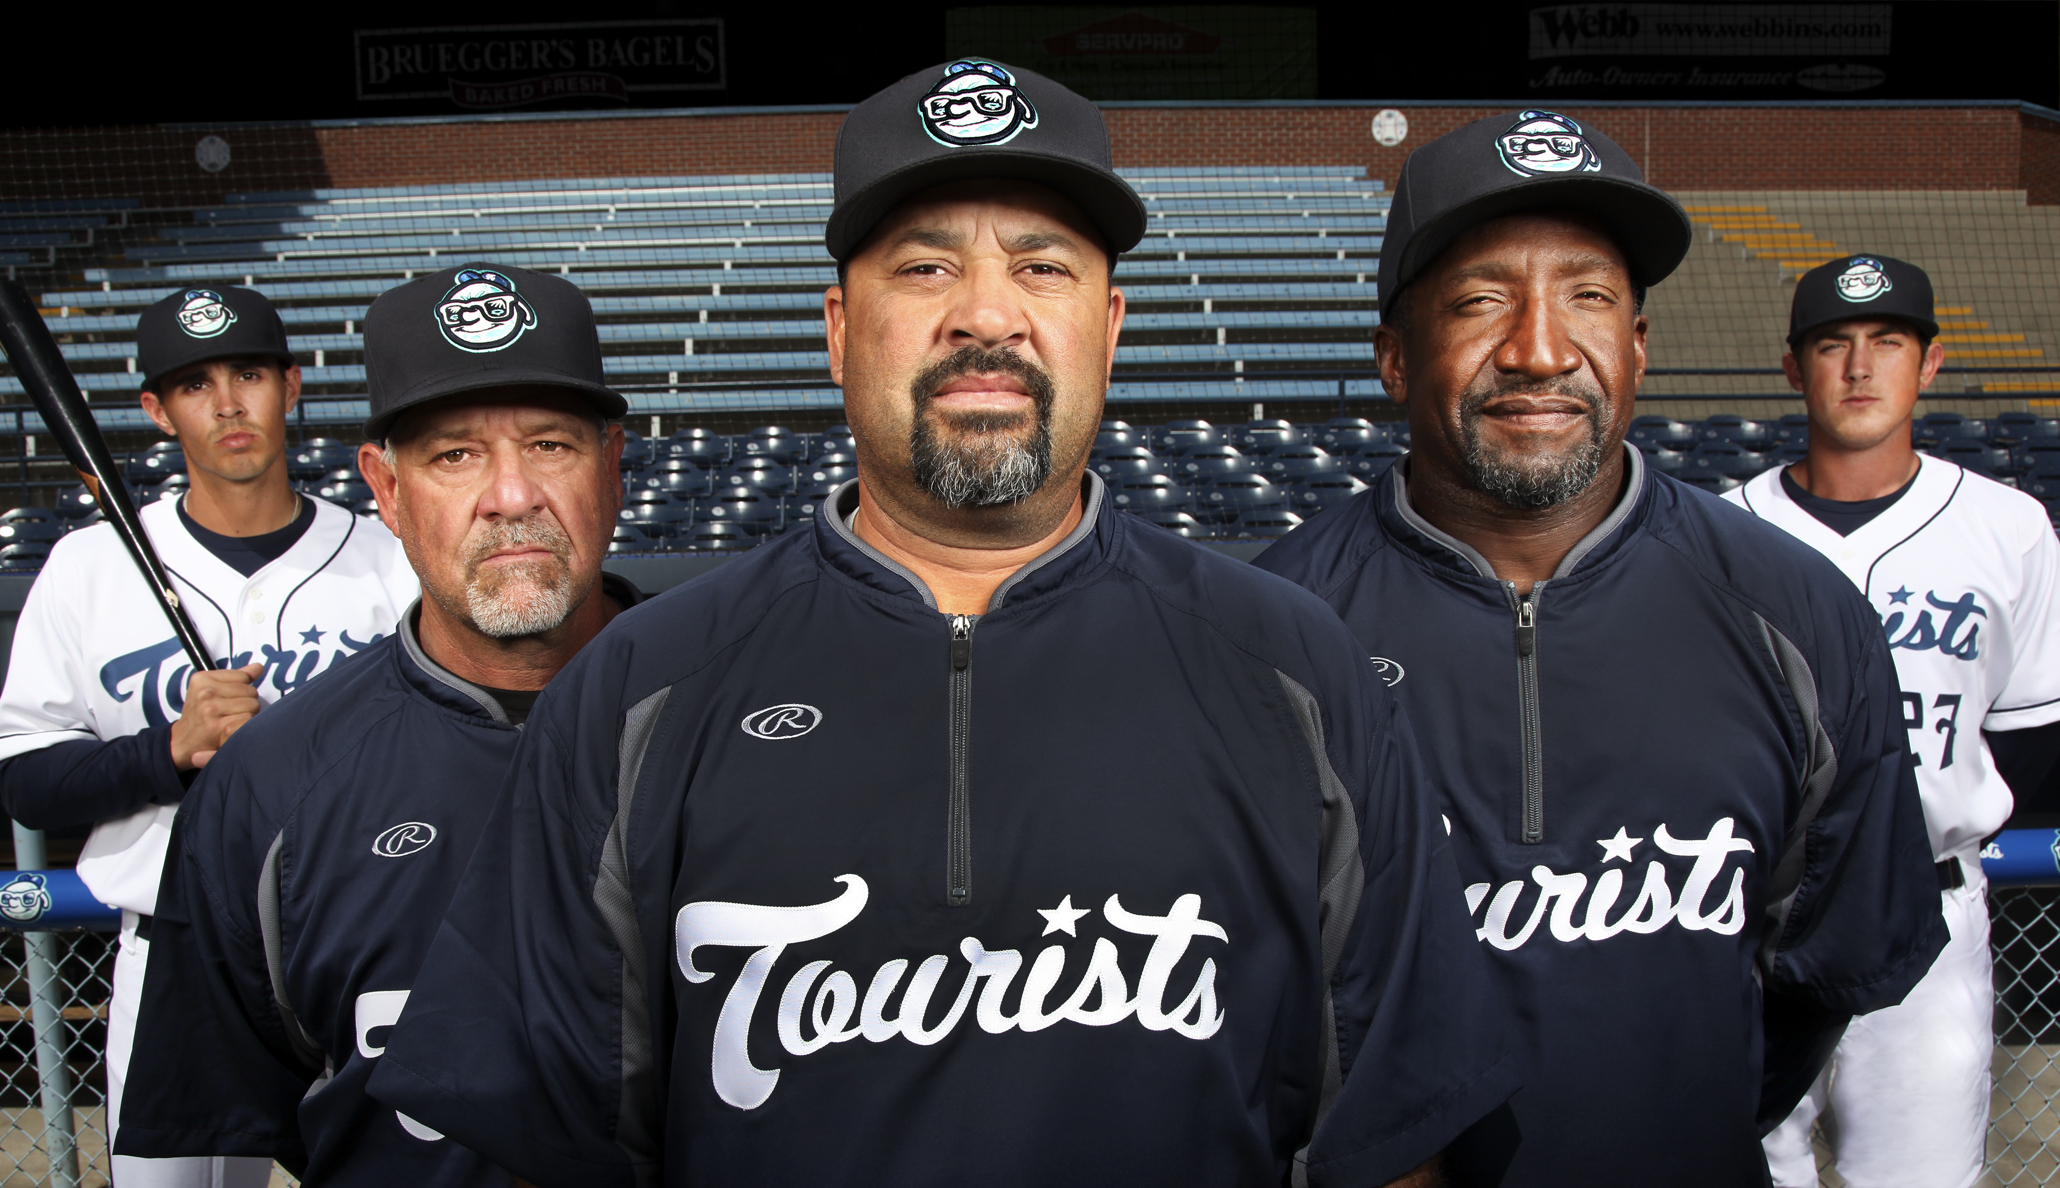 The Asheville Tourists will open their 2014 season on Thursday at McCormick Field. Pictured, from left: infielder Alec Mehrten; pitching coach Mark Brewer;  manager Fred Ocasio; hitting coach Mike Devereaux; and pitcher Zach Jemiolia. /Photo by Stewart O'Shields